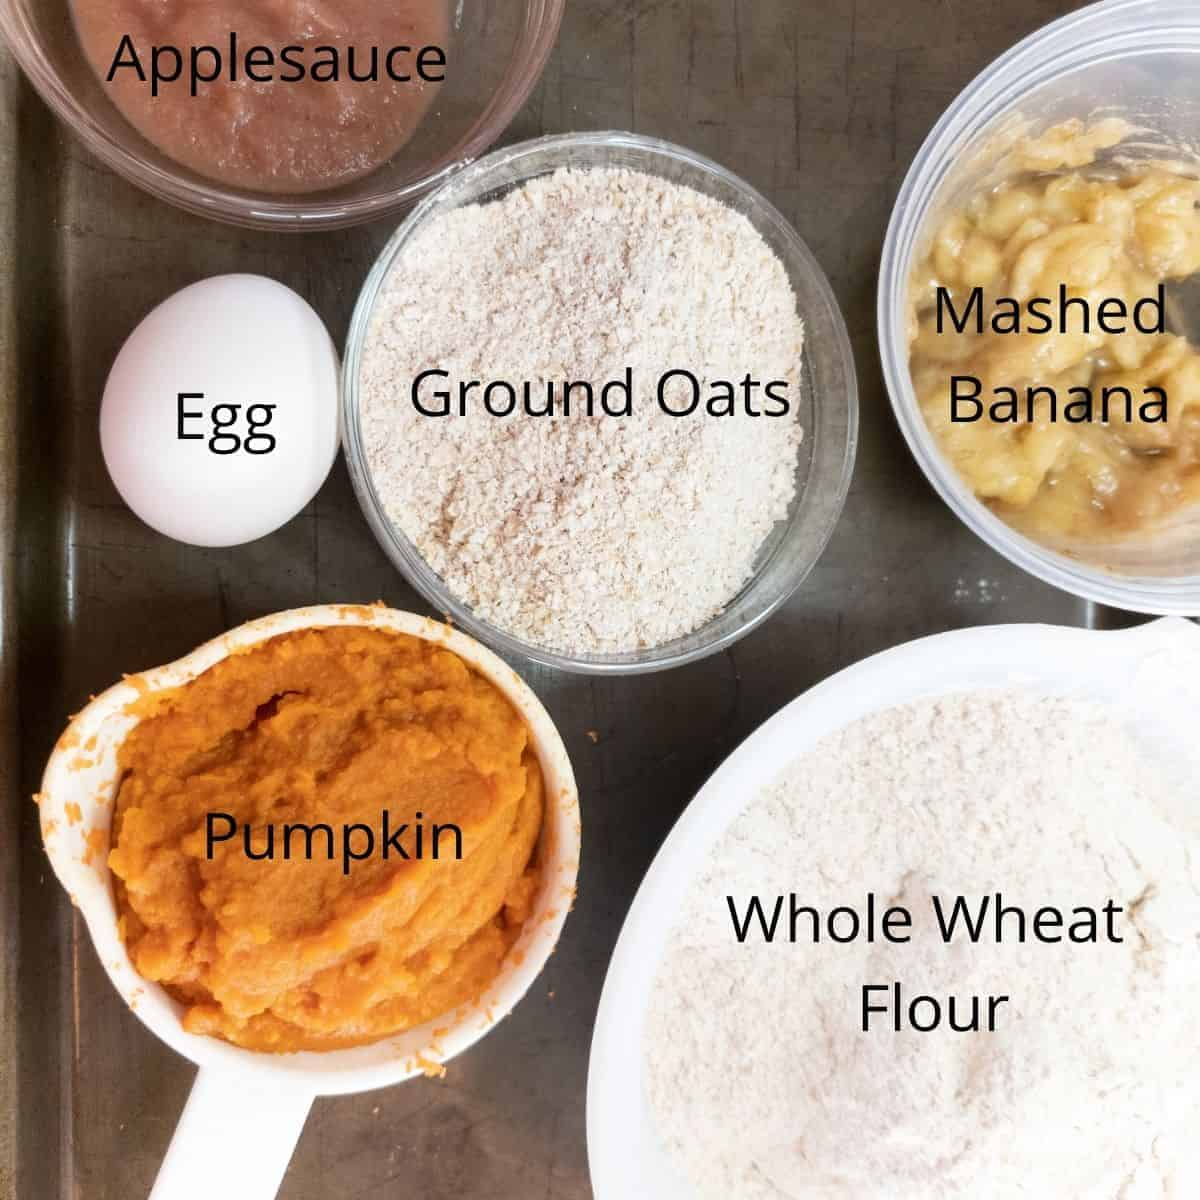 banana pumpkin dog treat ingredients